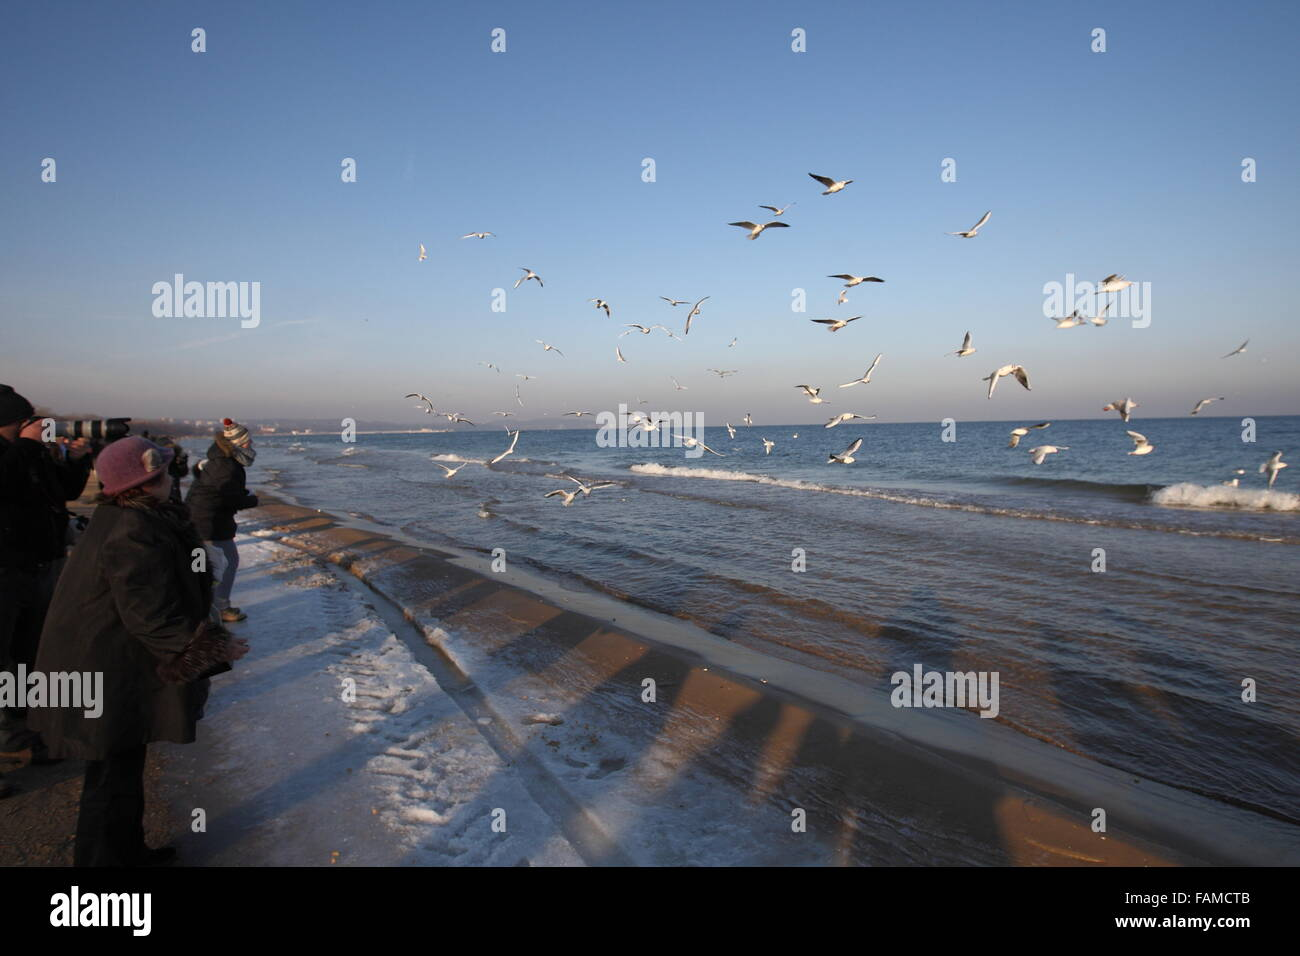 Gdansk, Poland 1st. Jan. 2015 People enjoy very cold (-5 Celsius degrees) but sunny weather walking along the Baltic - Stock Image